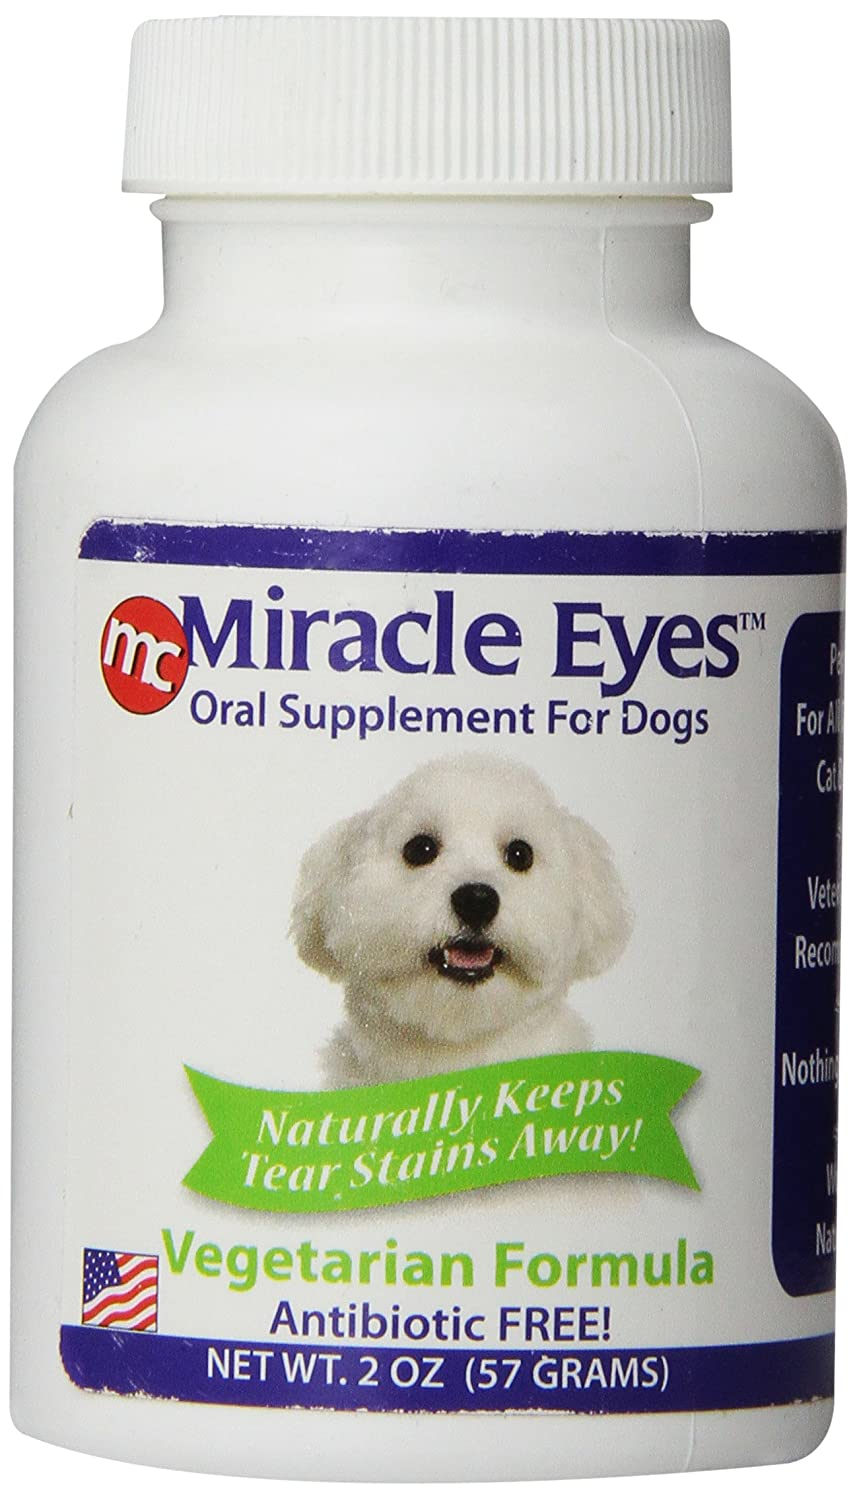 GIMBORN 731027 Miracle Eyes Vegetarian Formula for Pets, 2-Ounce